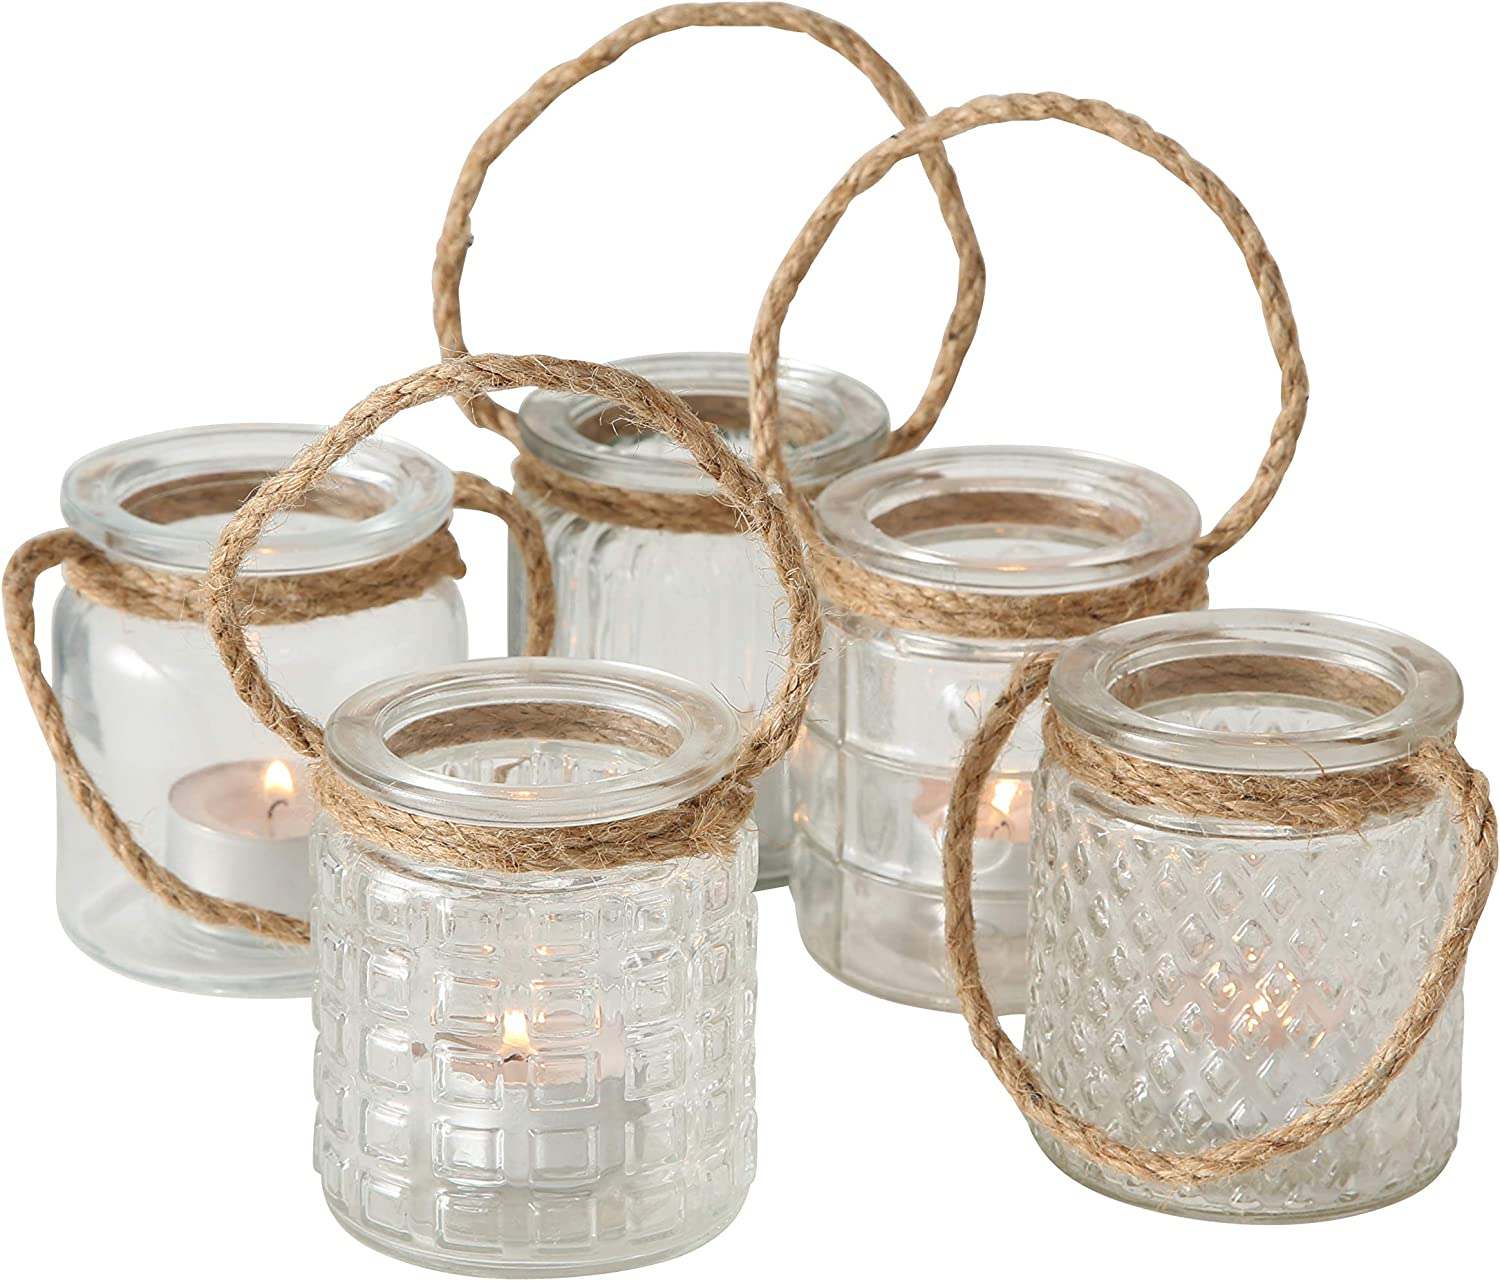 Whole House Worlds Beach Chic Nautical Rope Hurricane Lamps, Clear Glass Candle Holder, for LED or Wax Votive, Pillar or Tealights, Wind Light, Set of 5, 2 3/4 x 2 3/4 x 3 1/2 Inches